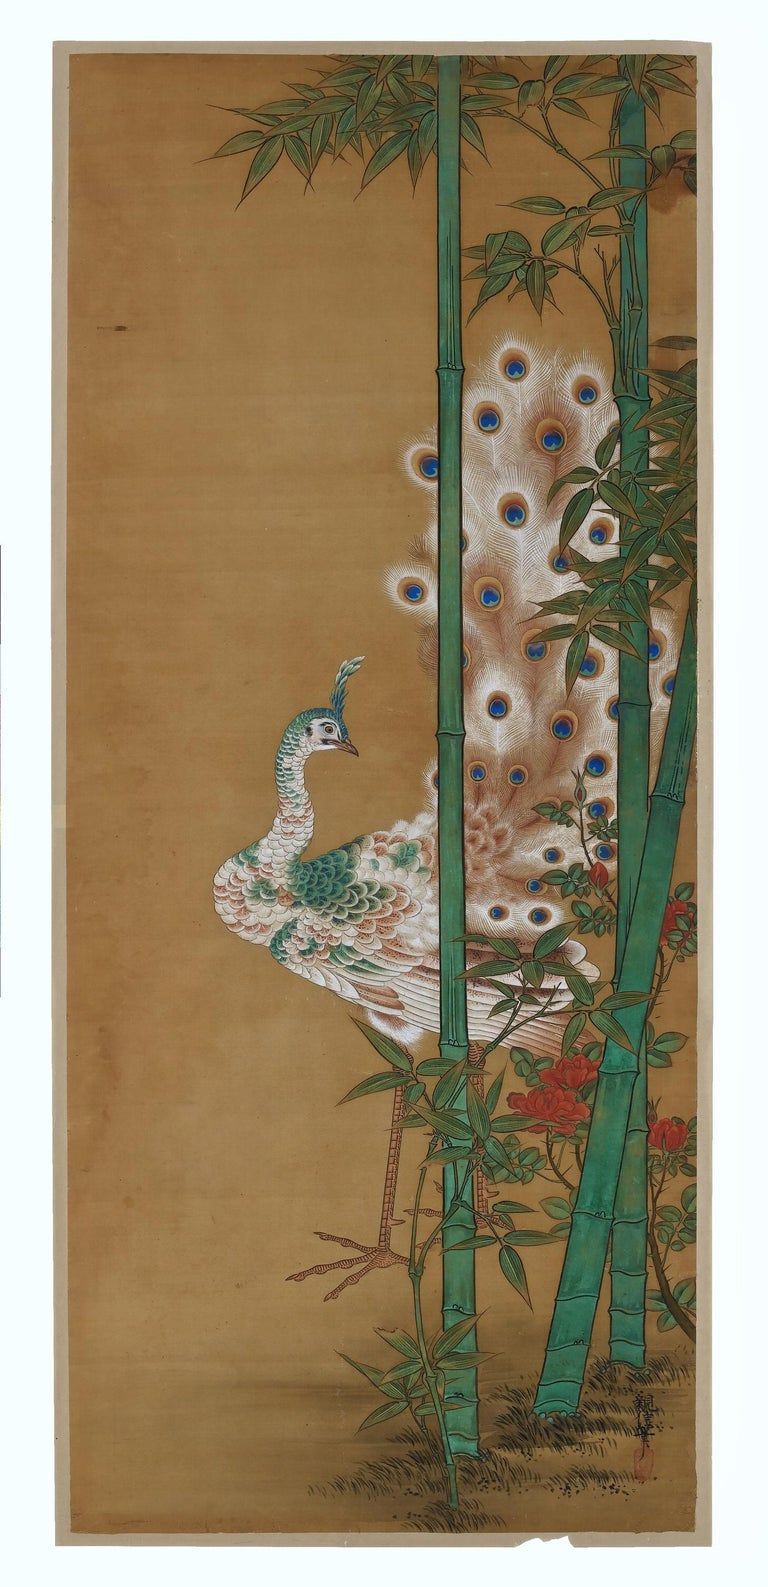 Birds & Flowers of the Seasons  Pheasants & Plum in Snow  Unframed painting. Ink, pigment and gofun on silk  Kano Chikanobu 1819-1888  Signature: Chikanobu  Seal: Shateki  Offered here is an unframed 'kacho-e' painting by the 19th